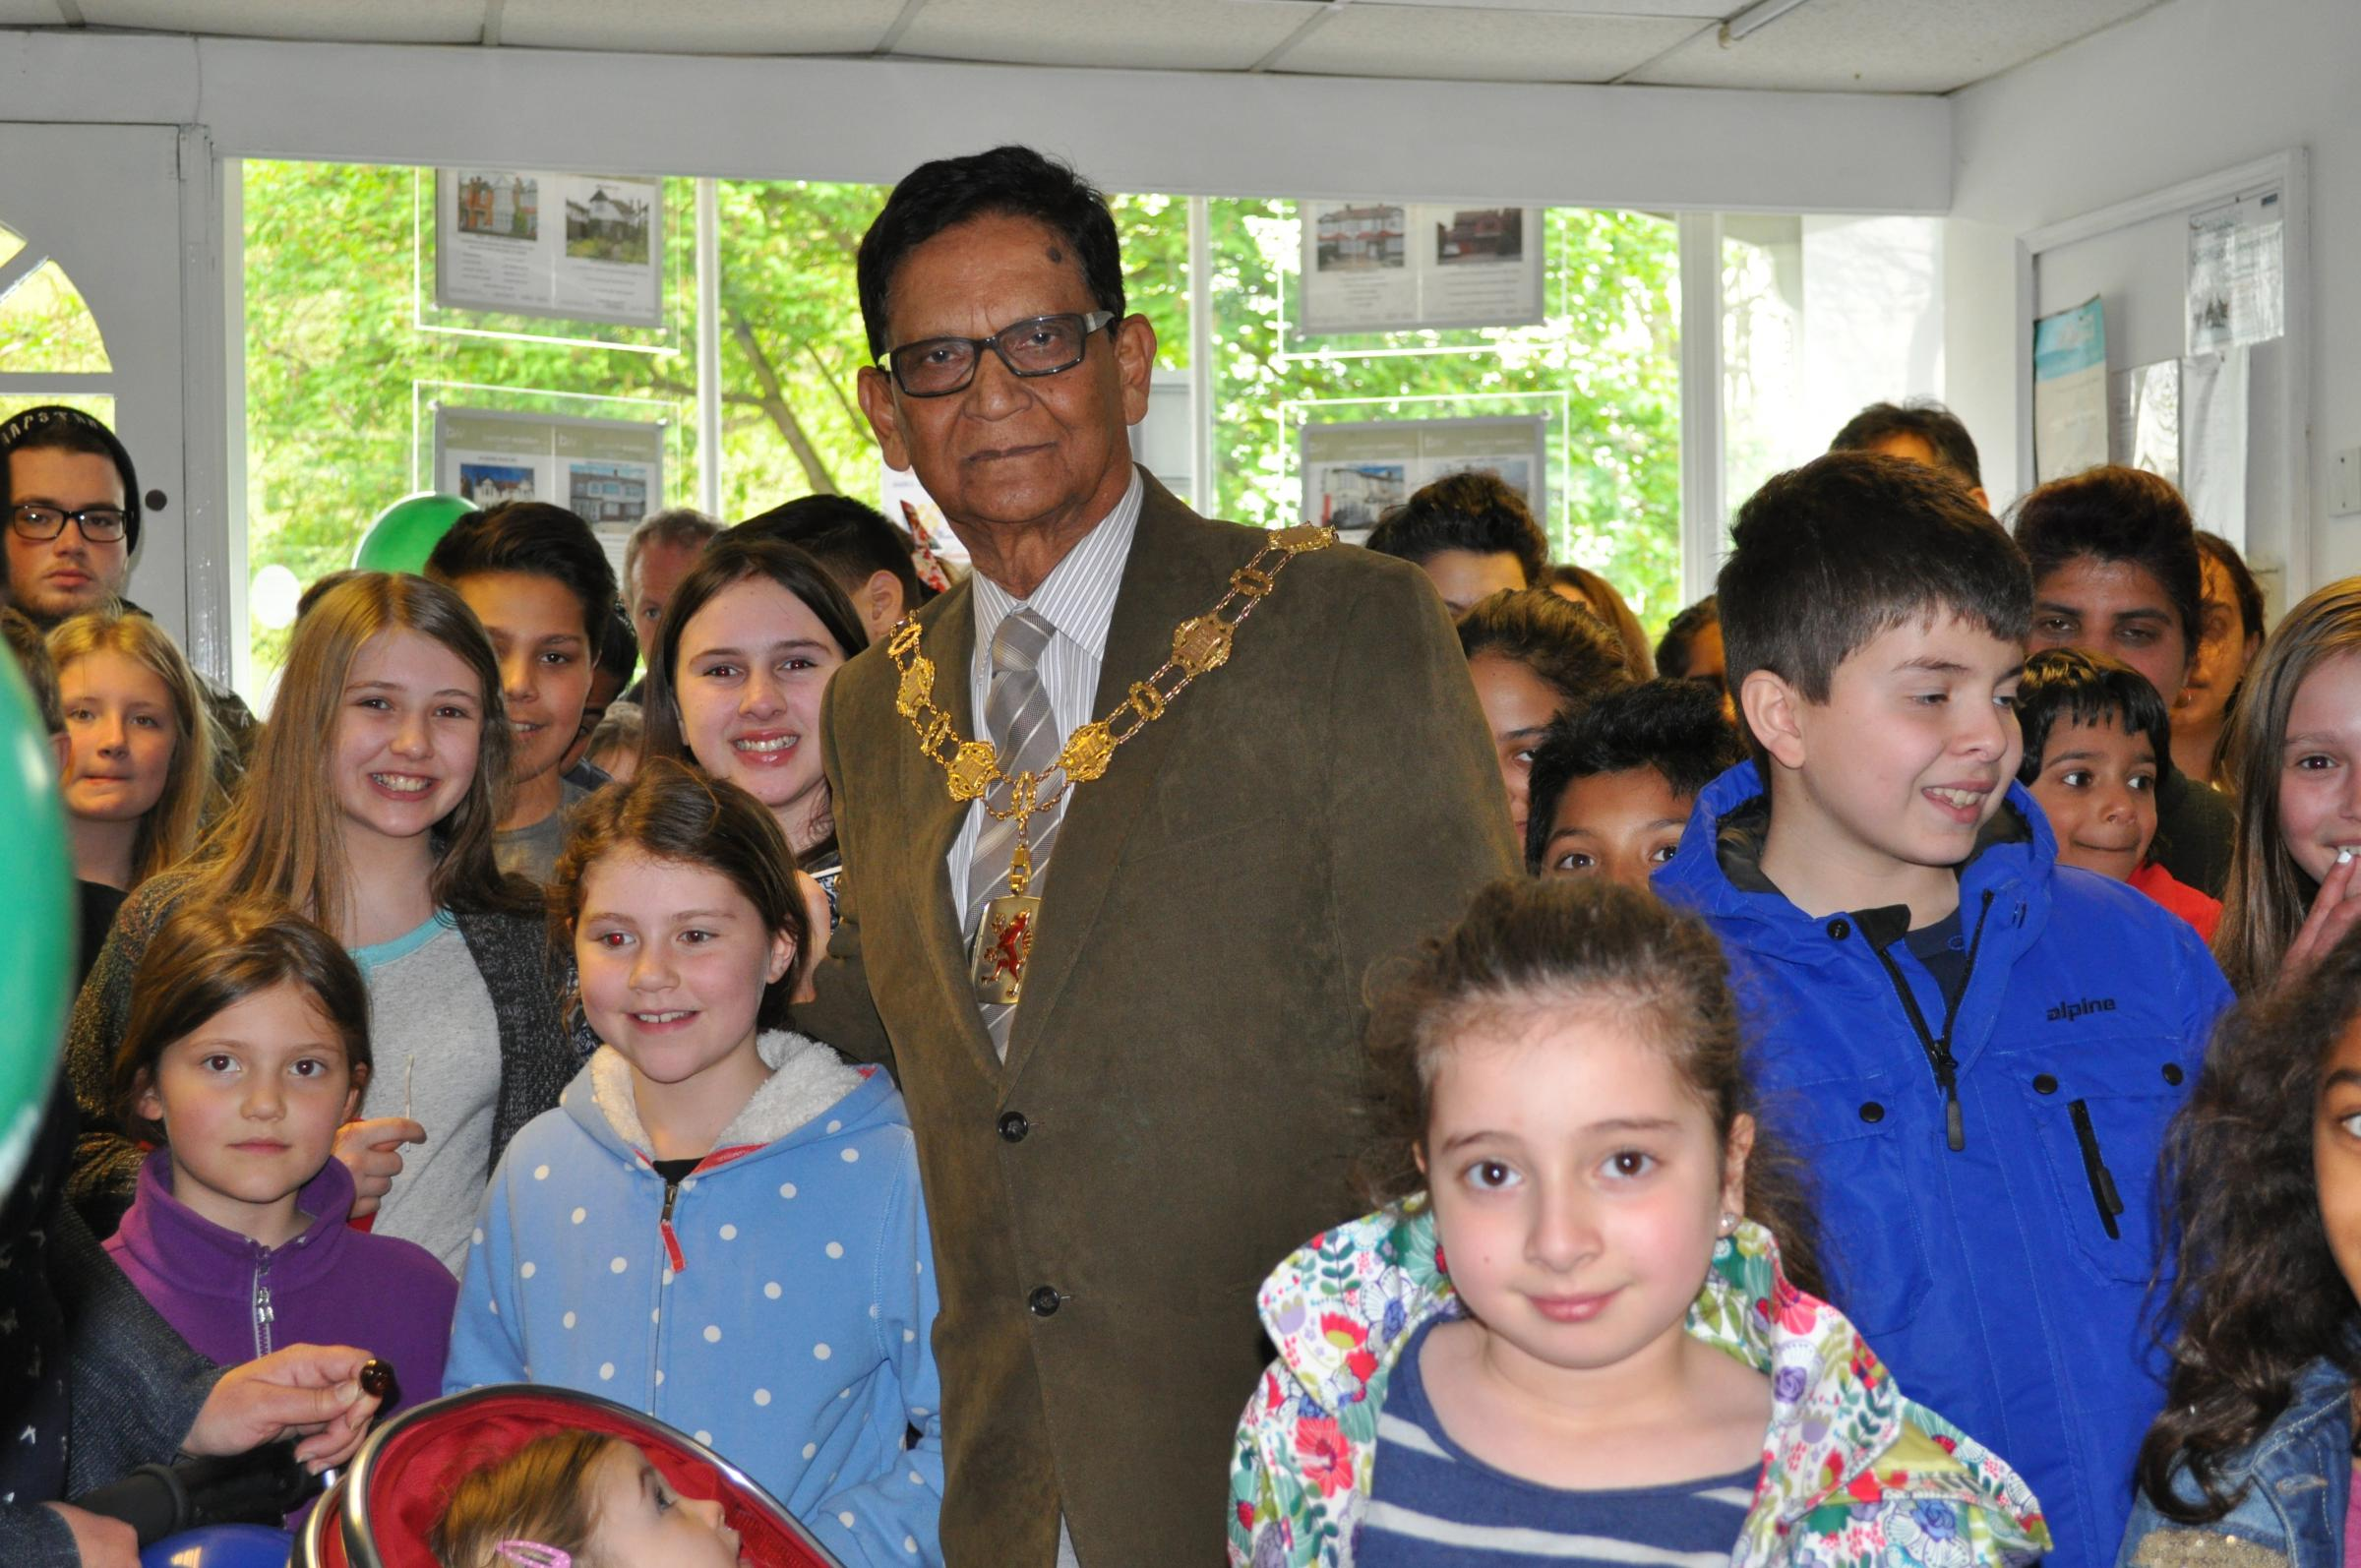 Enfield Mayor Chaudhury Anwar with children who took part in the hunt